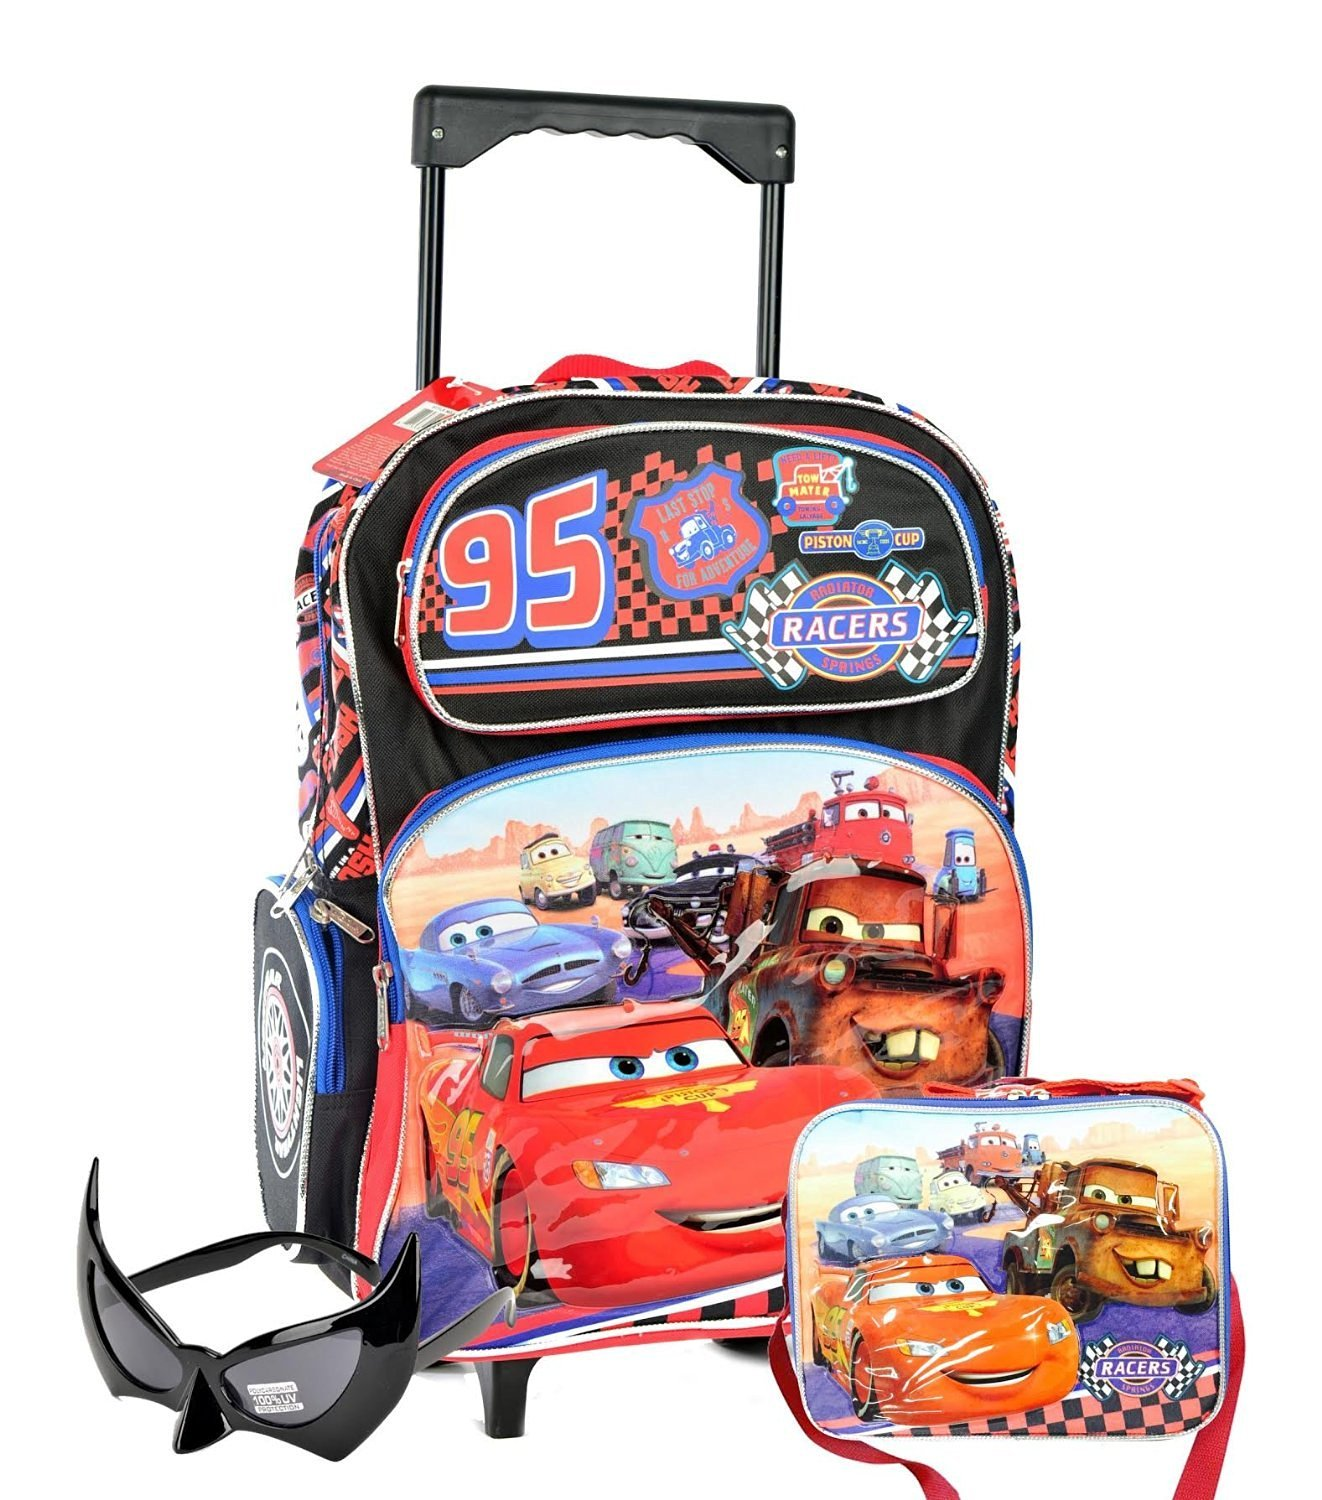 ae3b0c1cb89 Get Quotations · Back to School Combo - Disney Cars Large Rolling Backpack  and Cars Insulated Lunch Bag Set